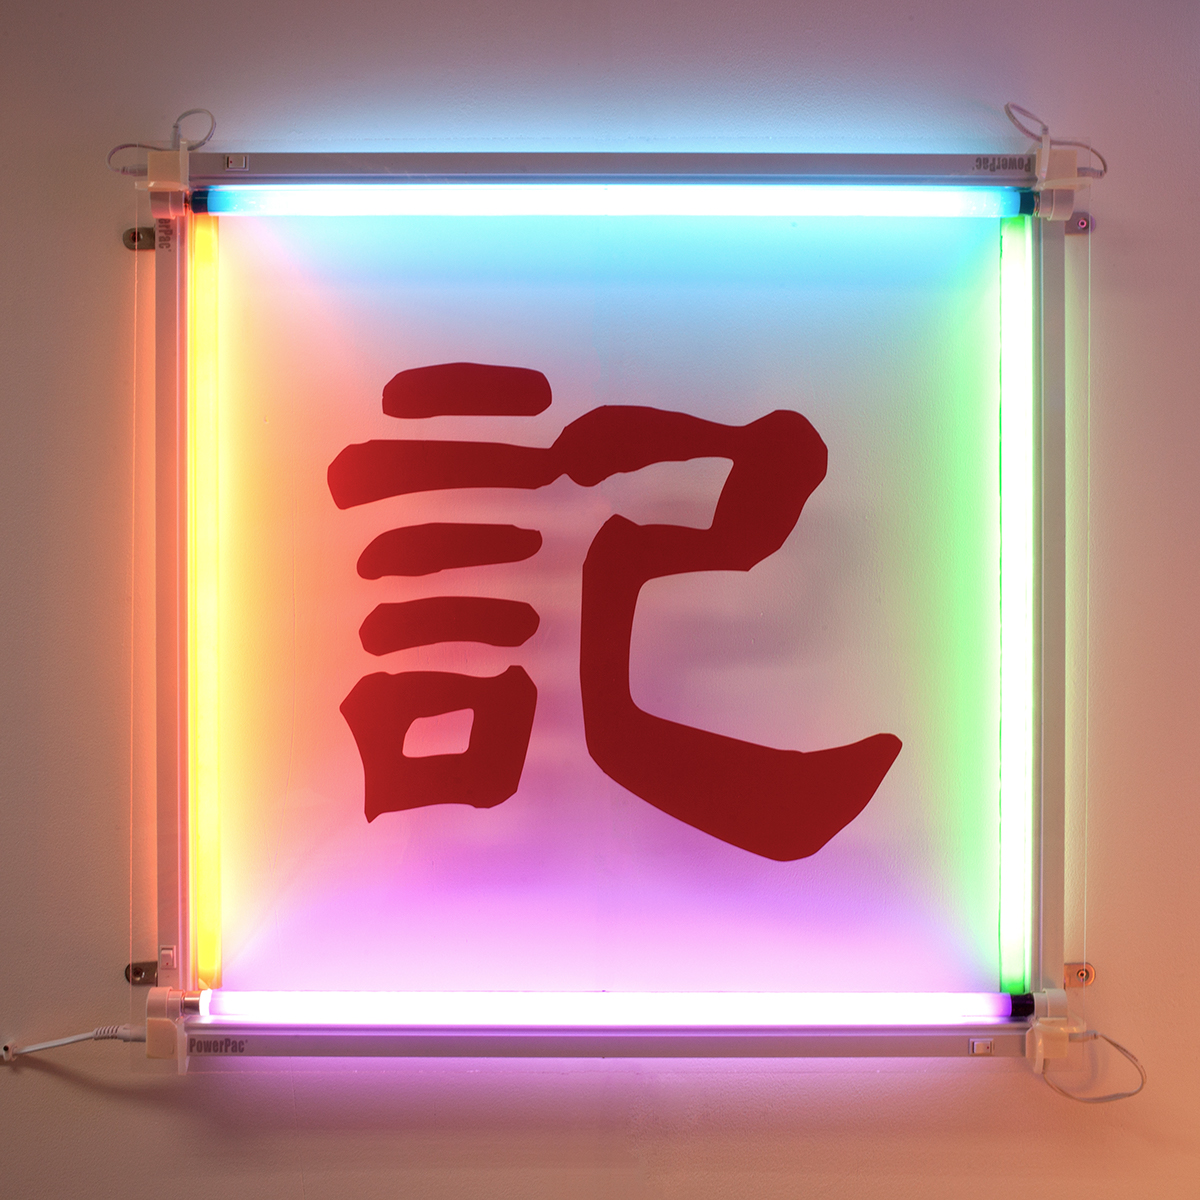 hawker signs Signboards singapore visual language process lights fluorescent spray paint vernacular non-design Ugly Design chinese